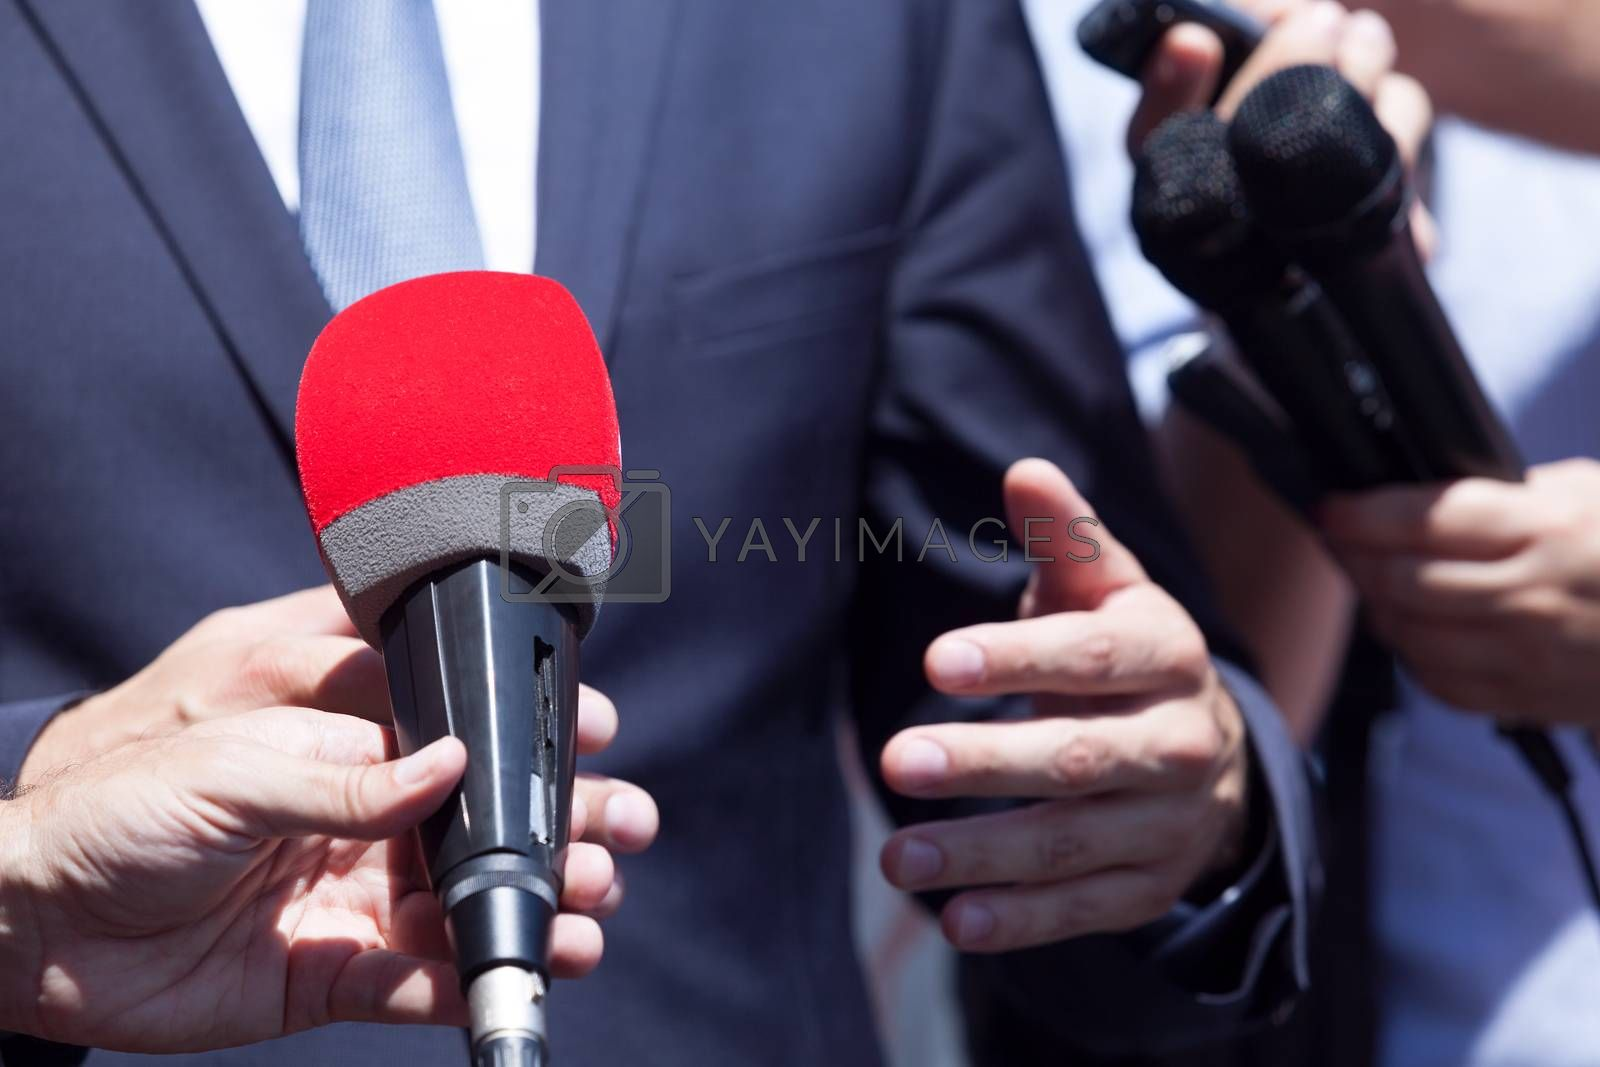 Press interview with politician or businessman. News conference.